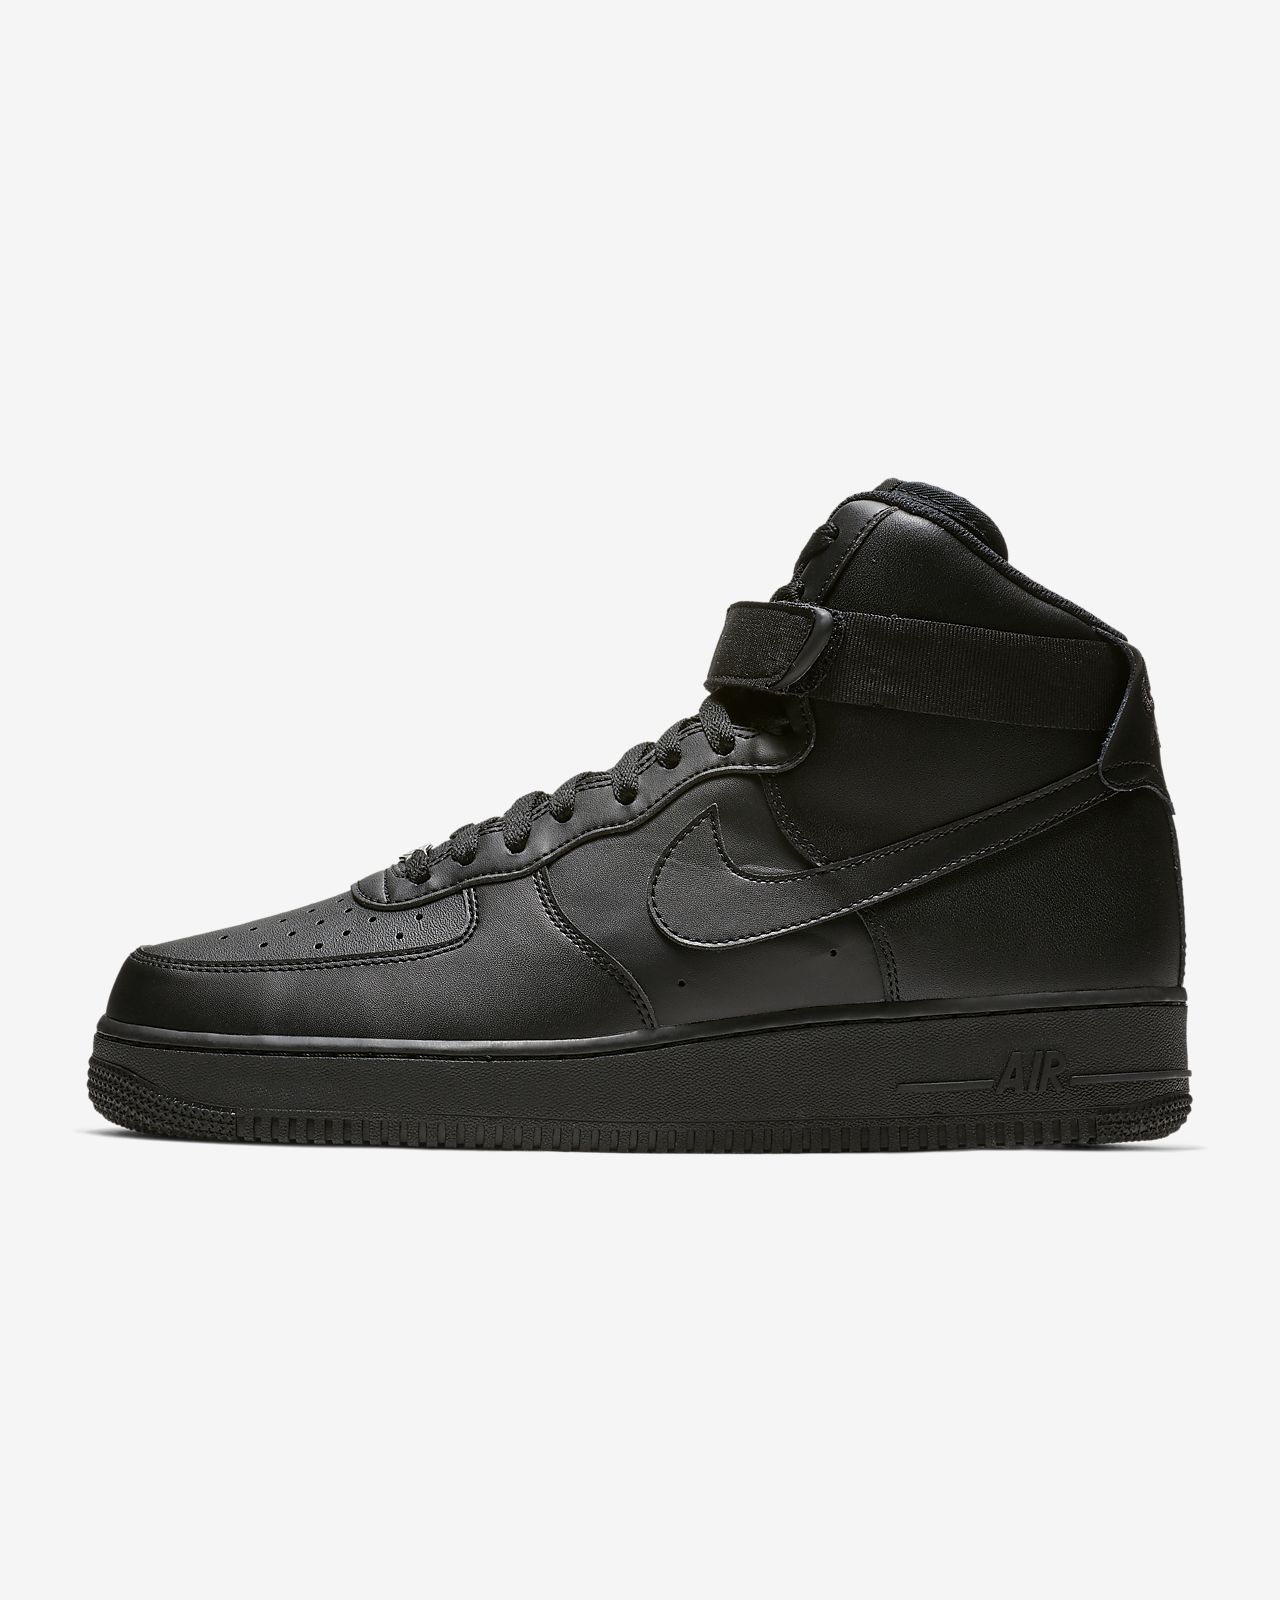 wholesale dealer 999bc f82cd ... Nike Air Force 1 High 07 Mens Shoe